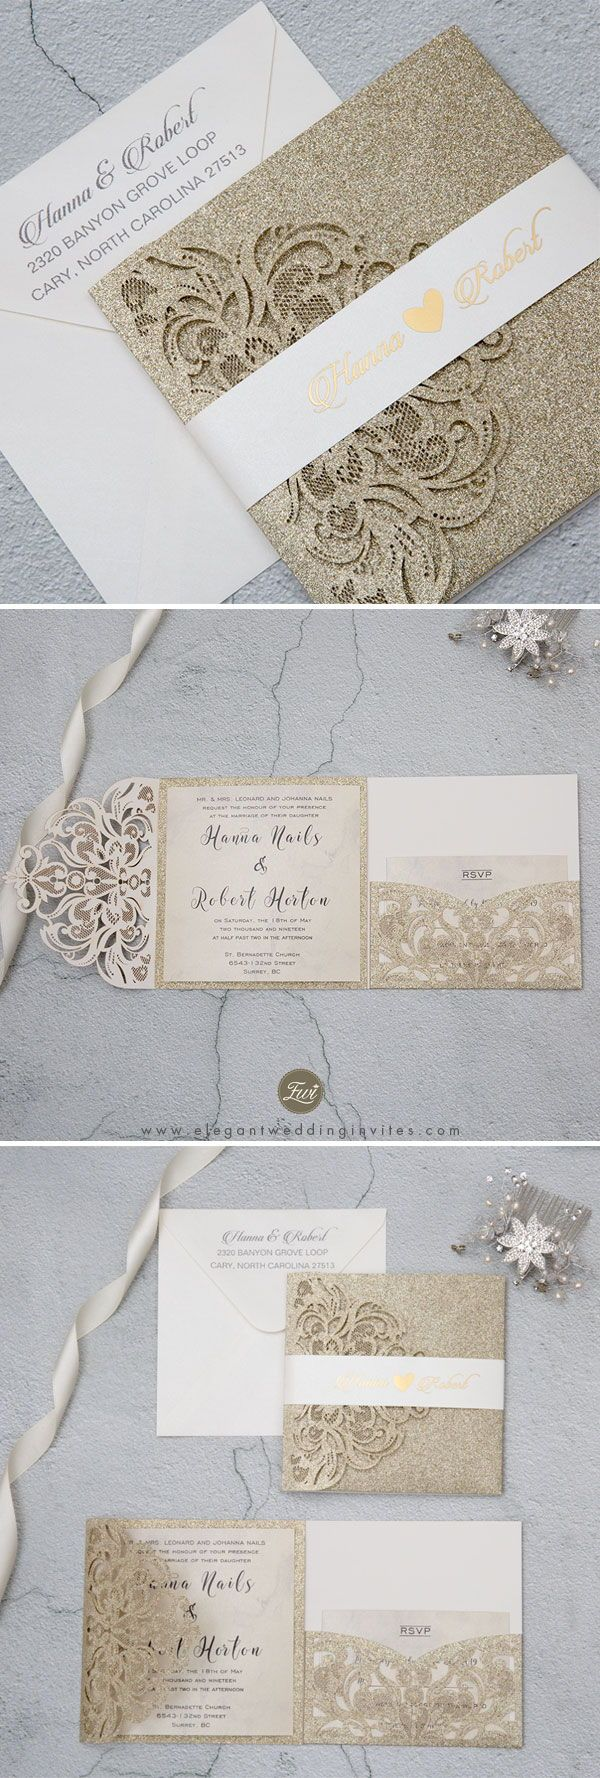 343 Best Wedding Invitations Images On Pinterest